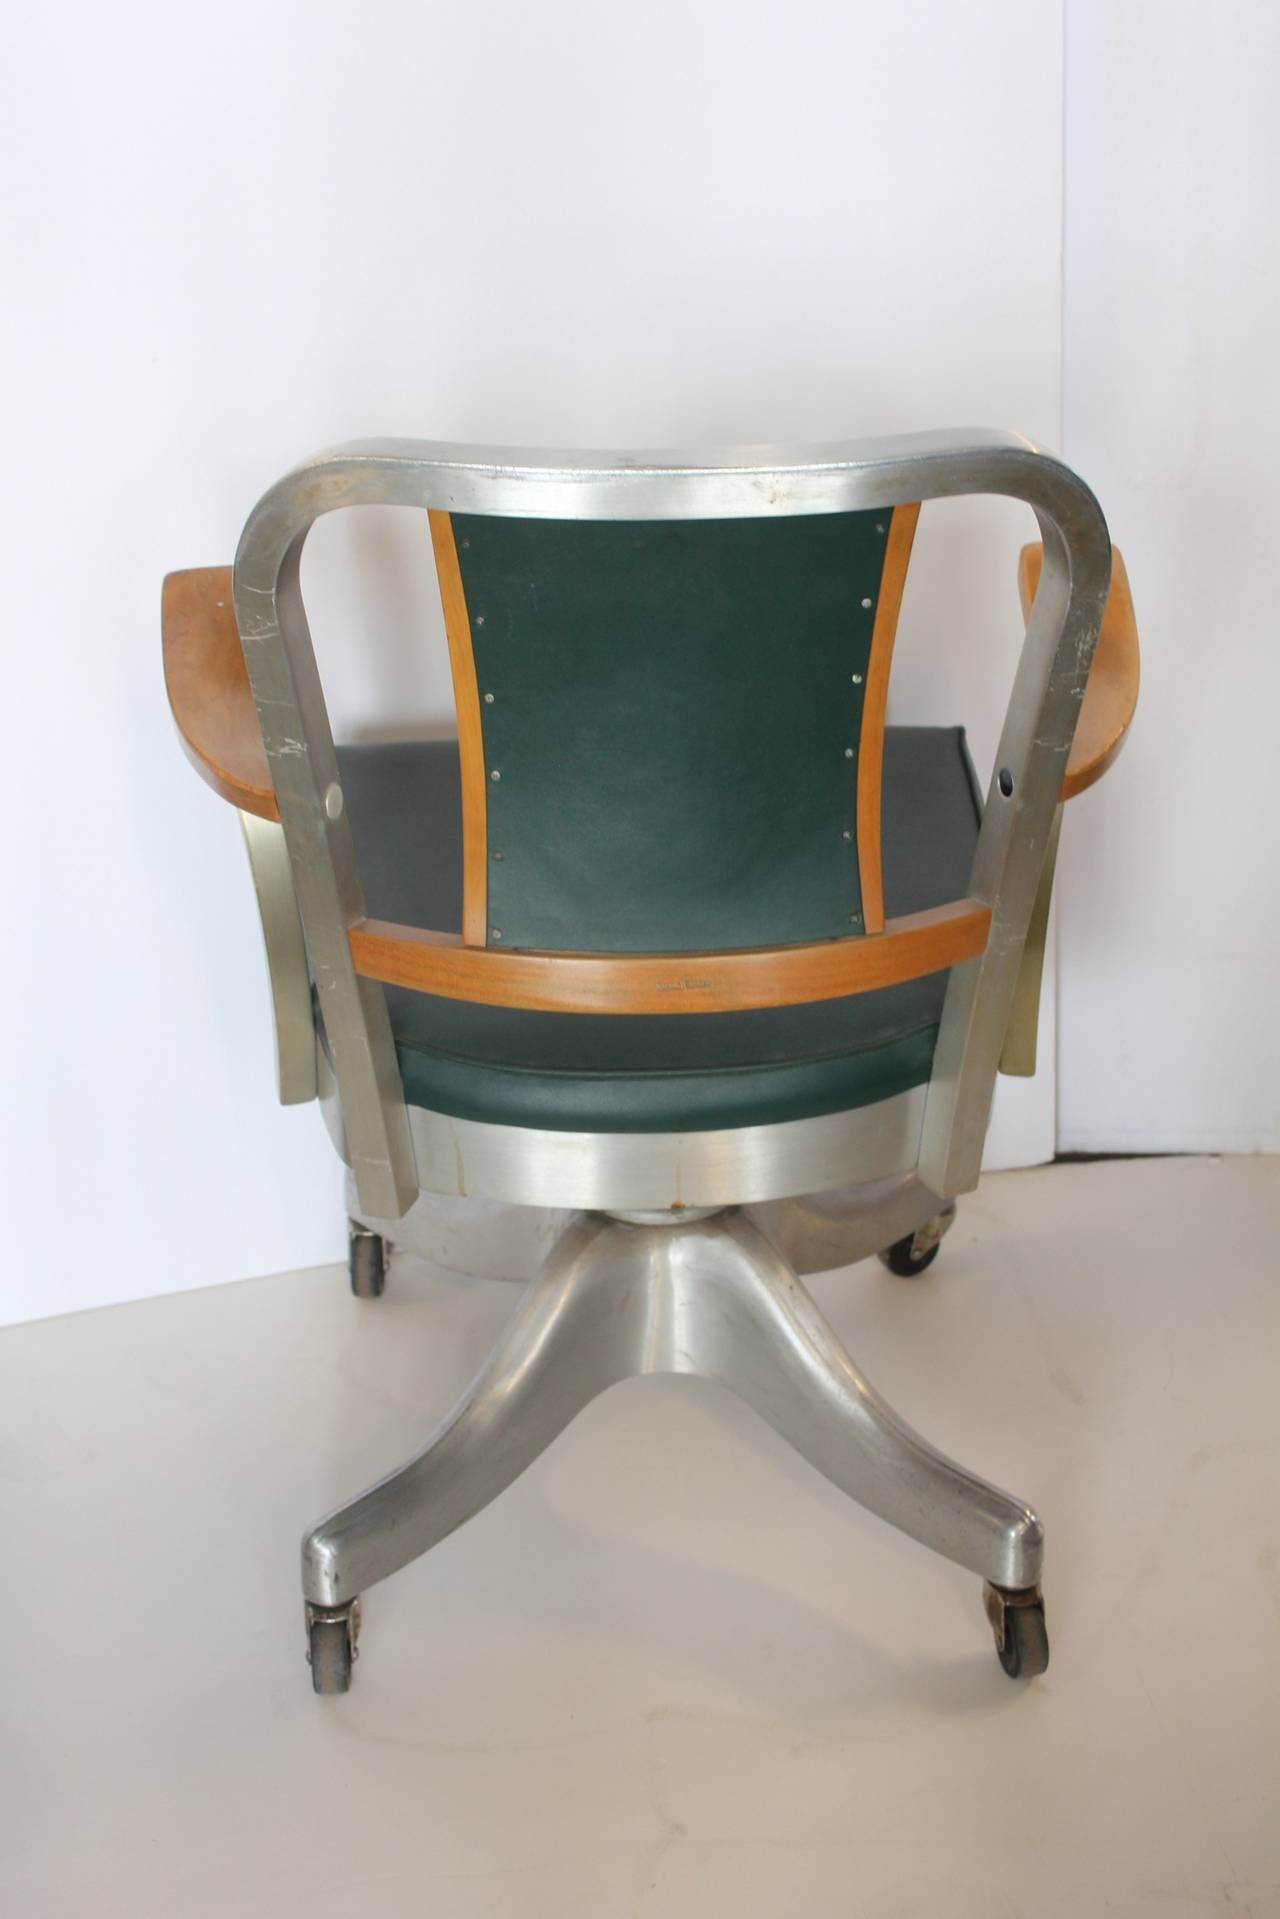 shaw walker chair summer high booster seat 1940s desk by at 1stdibs